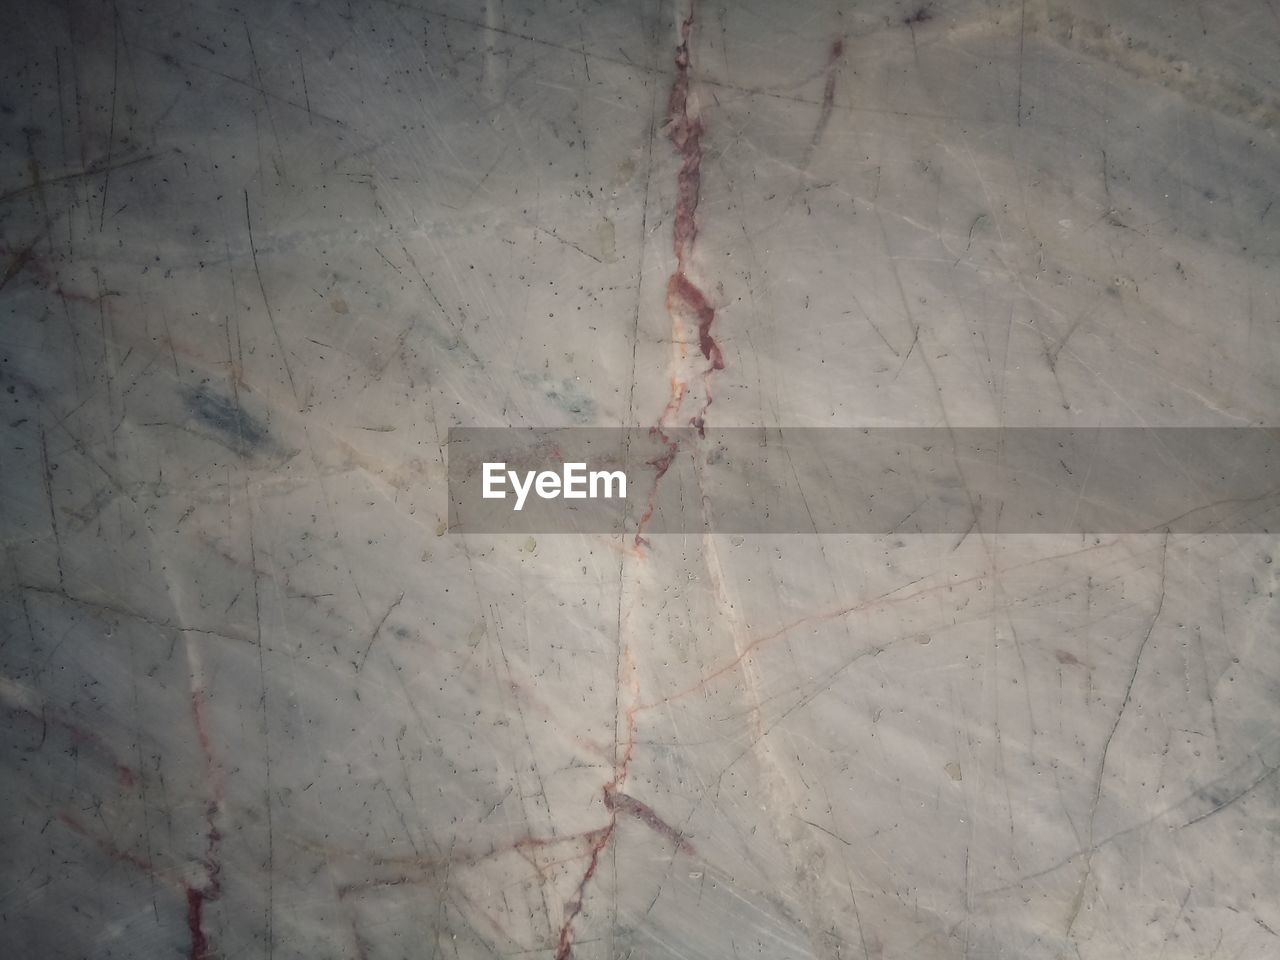 flooring, backgrounds, pattern, full frame, tile, indoors, no people, tiled floor, high angle view, textured, marble, nature, marbled effect, day, red, close-up, reflection, design, shape